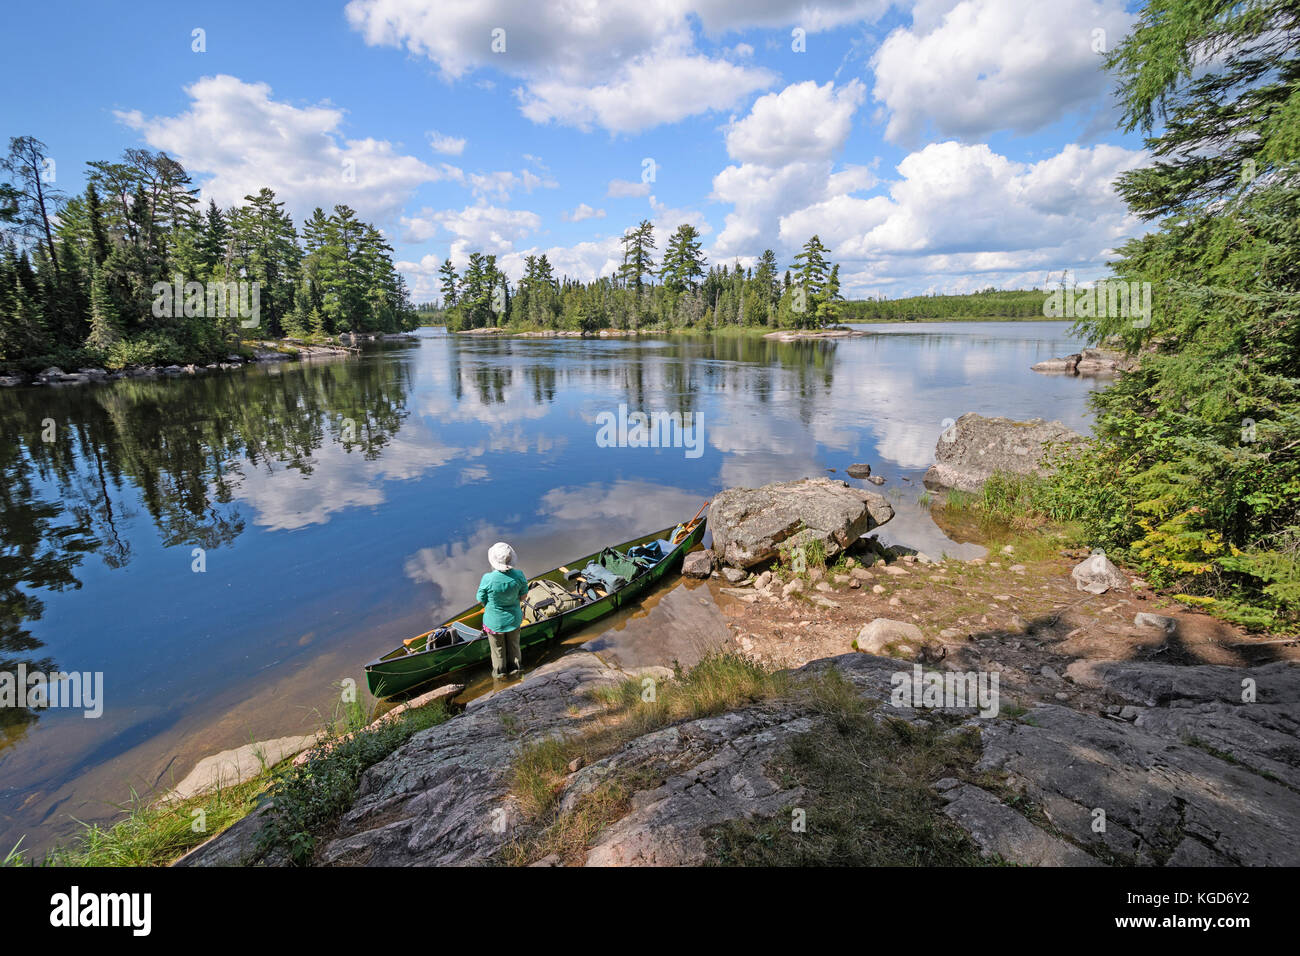 Ready for Adventure on the Falls Chain in Quetico Provincial Park in Ontario - Stock Image